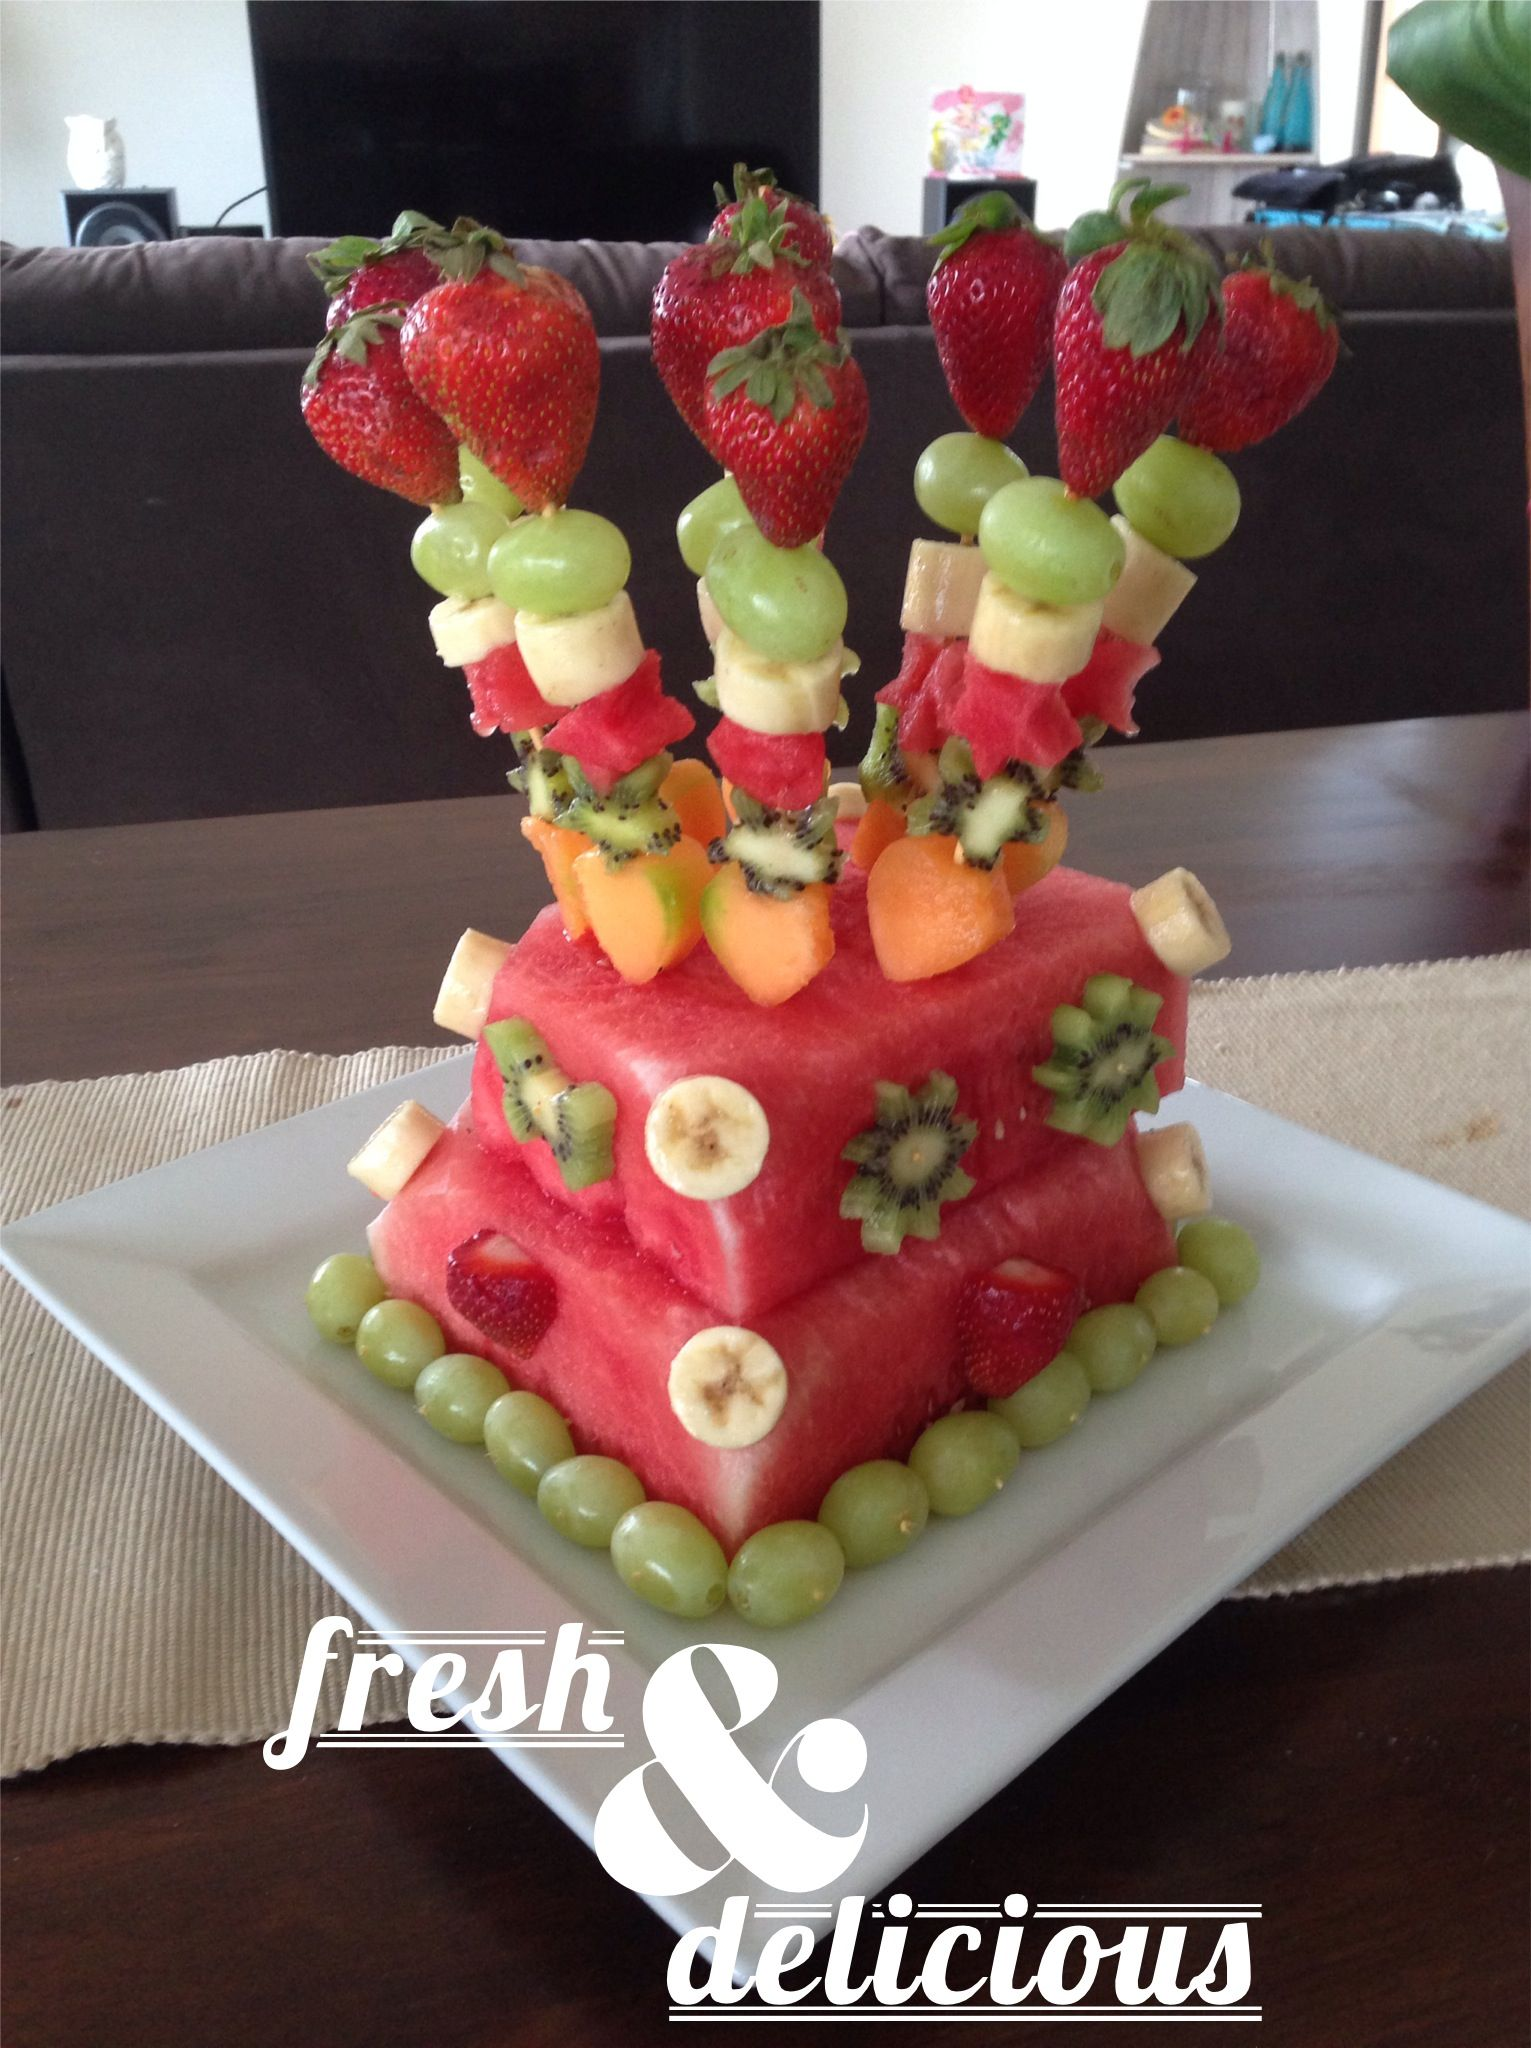 The Cake We Made Entirely Out Of Fresh Fruit Cake Made Of Fruit